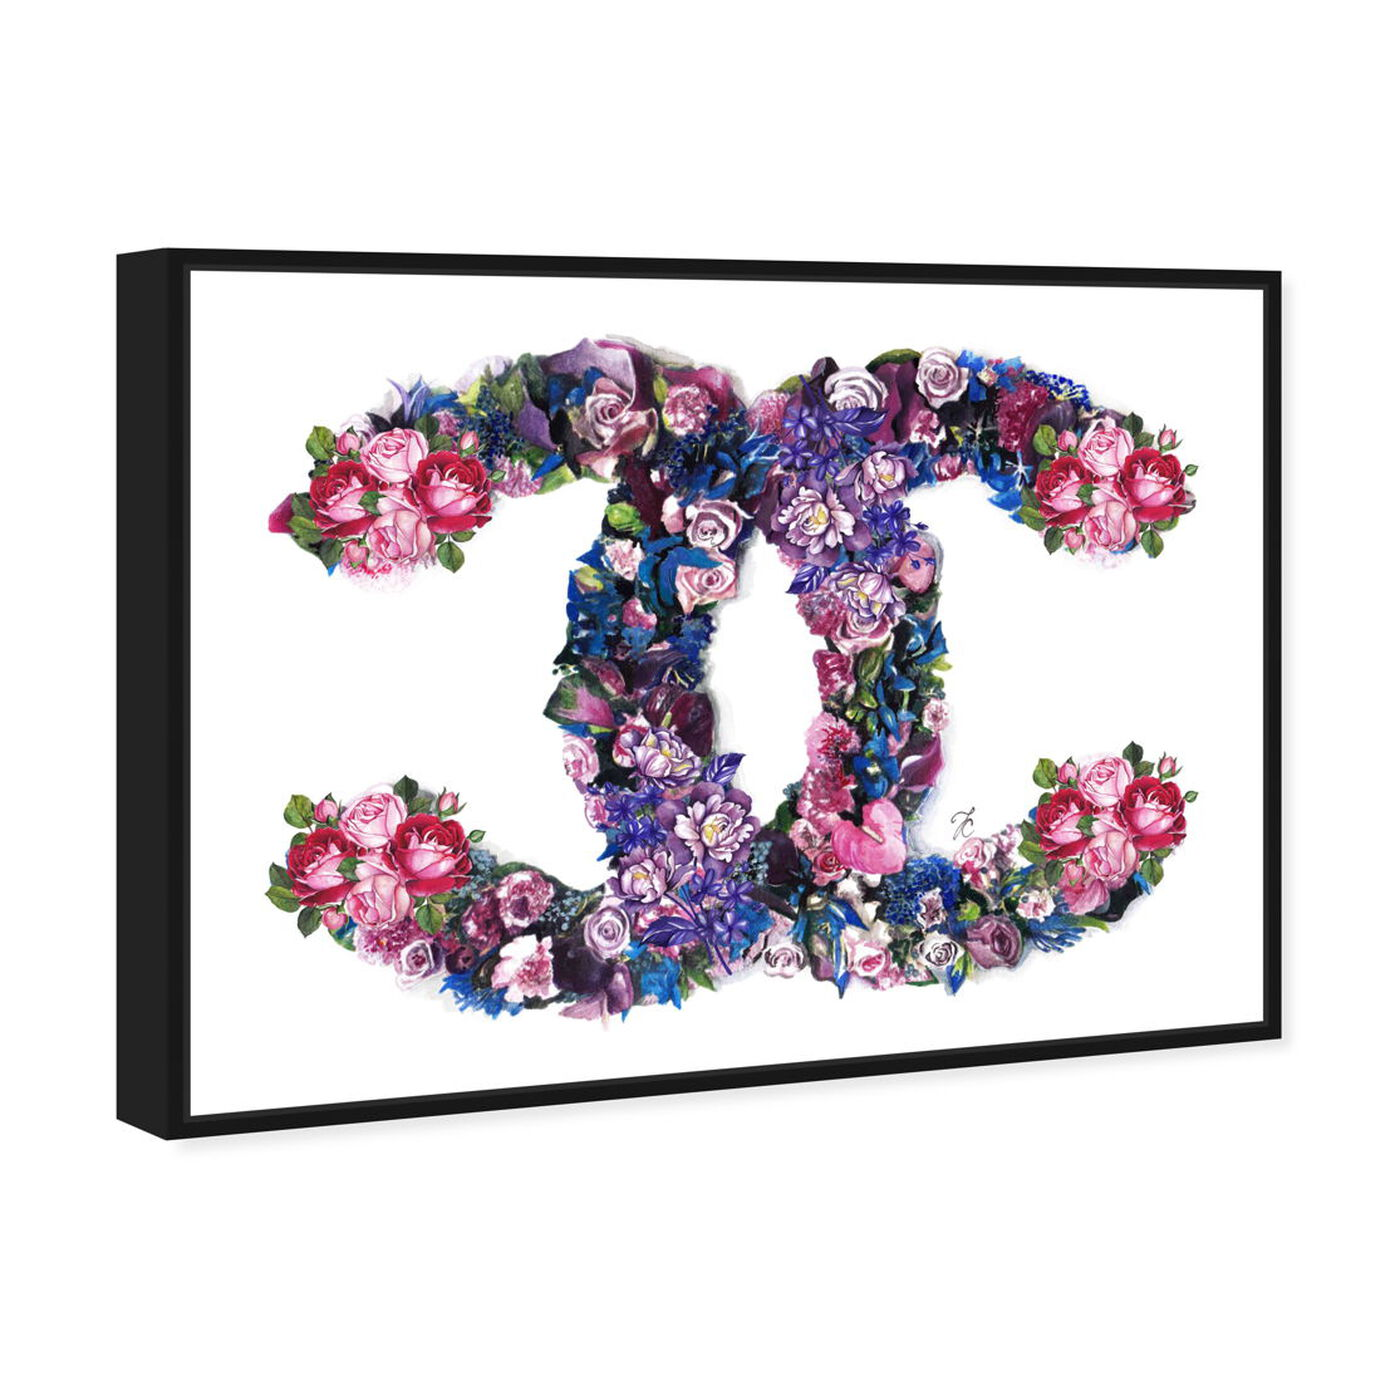 Angled view of Doll Memories - Exquisite Flower Delight featuring fashion and glam and lifestyle art.